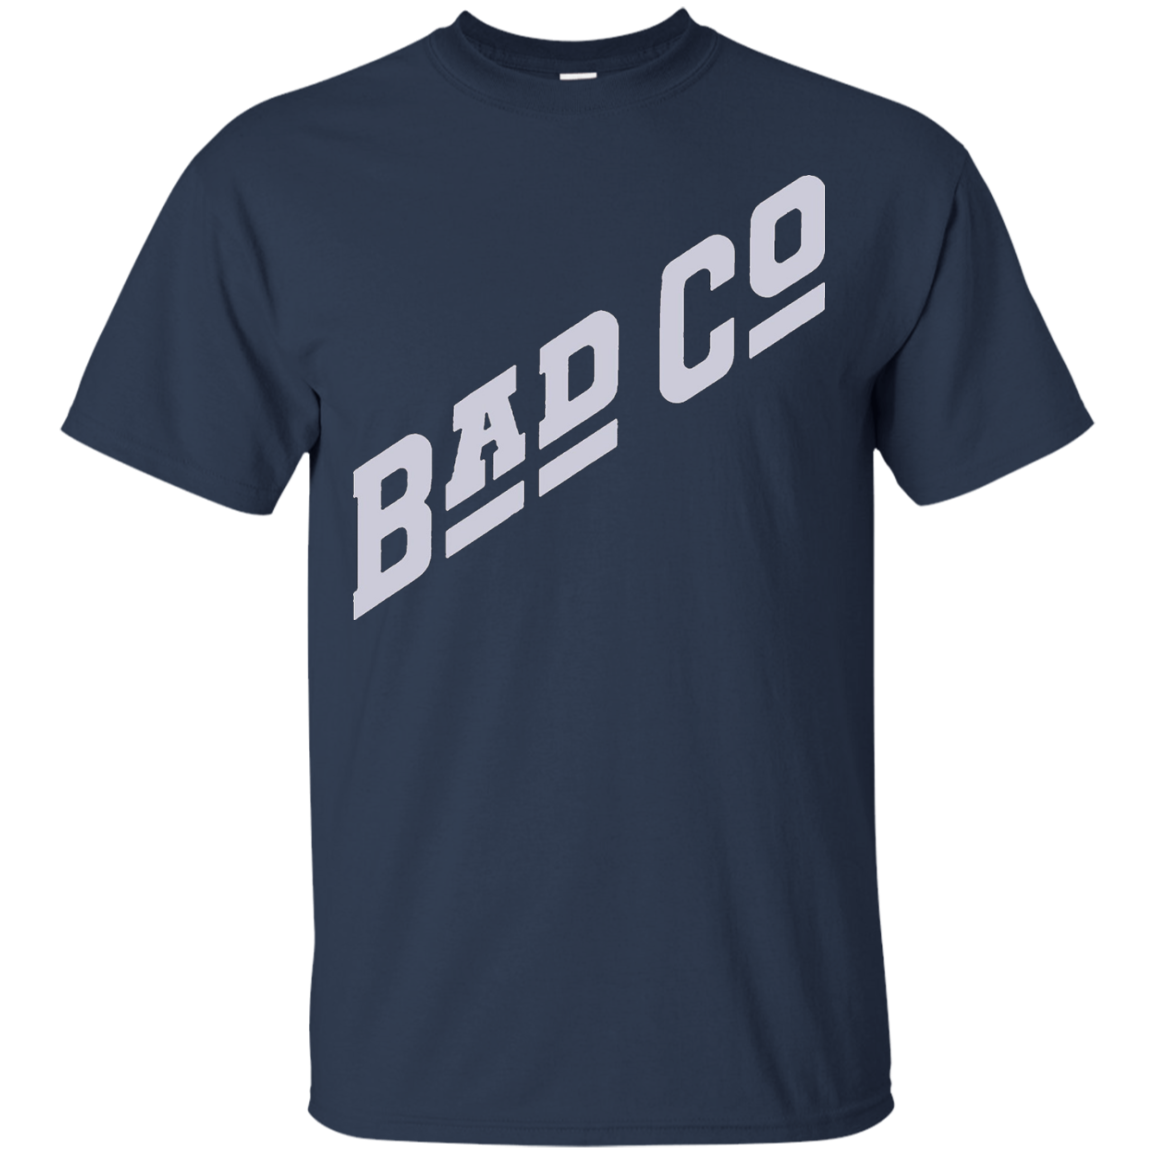 Bad Co Bad Company Rock Band T-Shirt Gift